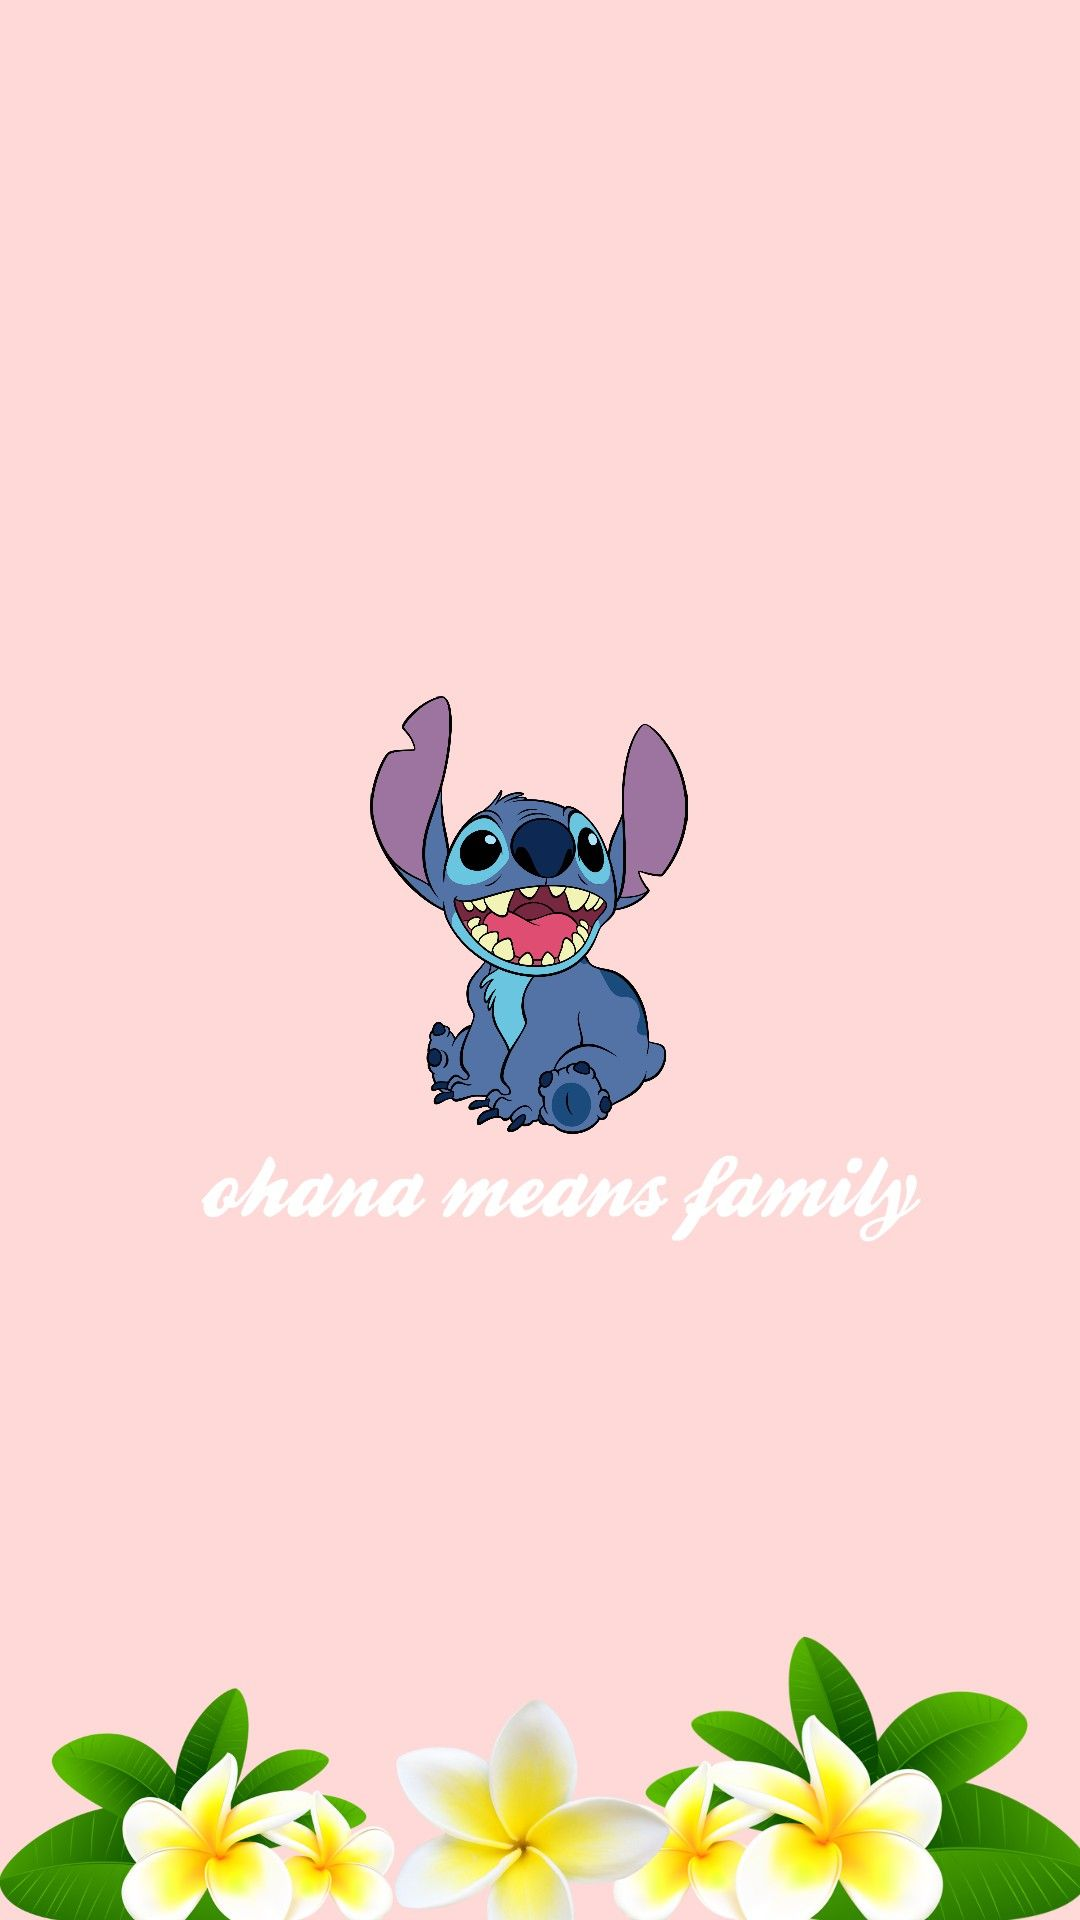 Aesthetic Stitch Cartoon Wallpapers Posted By Michelle Thompson